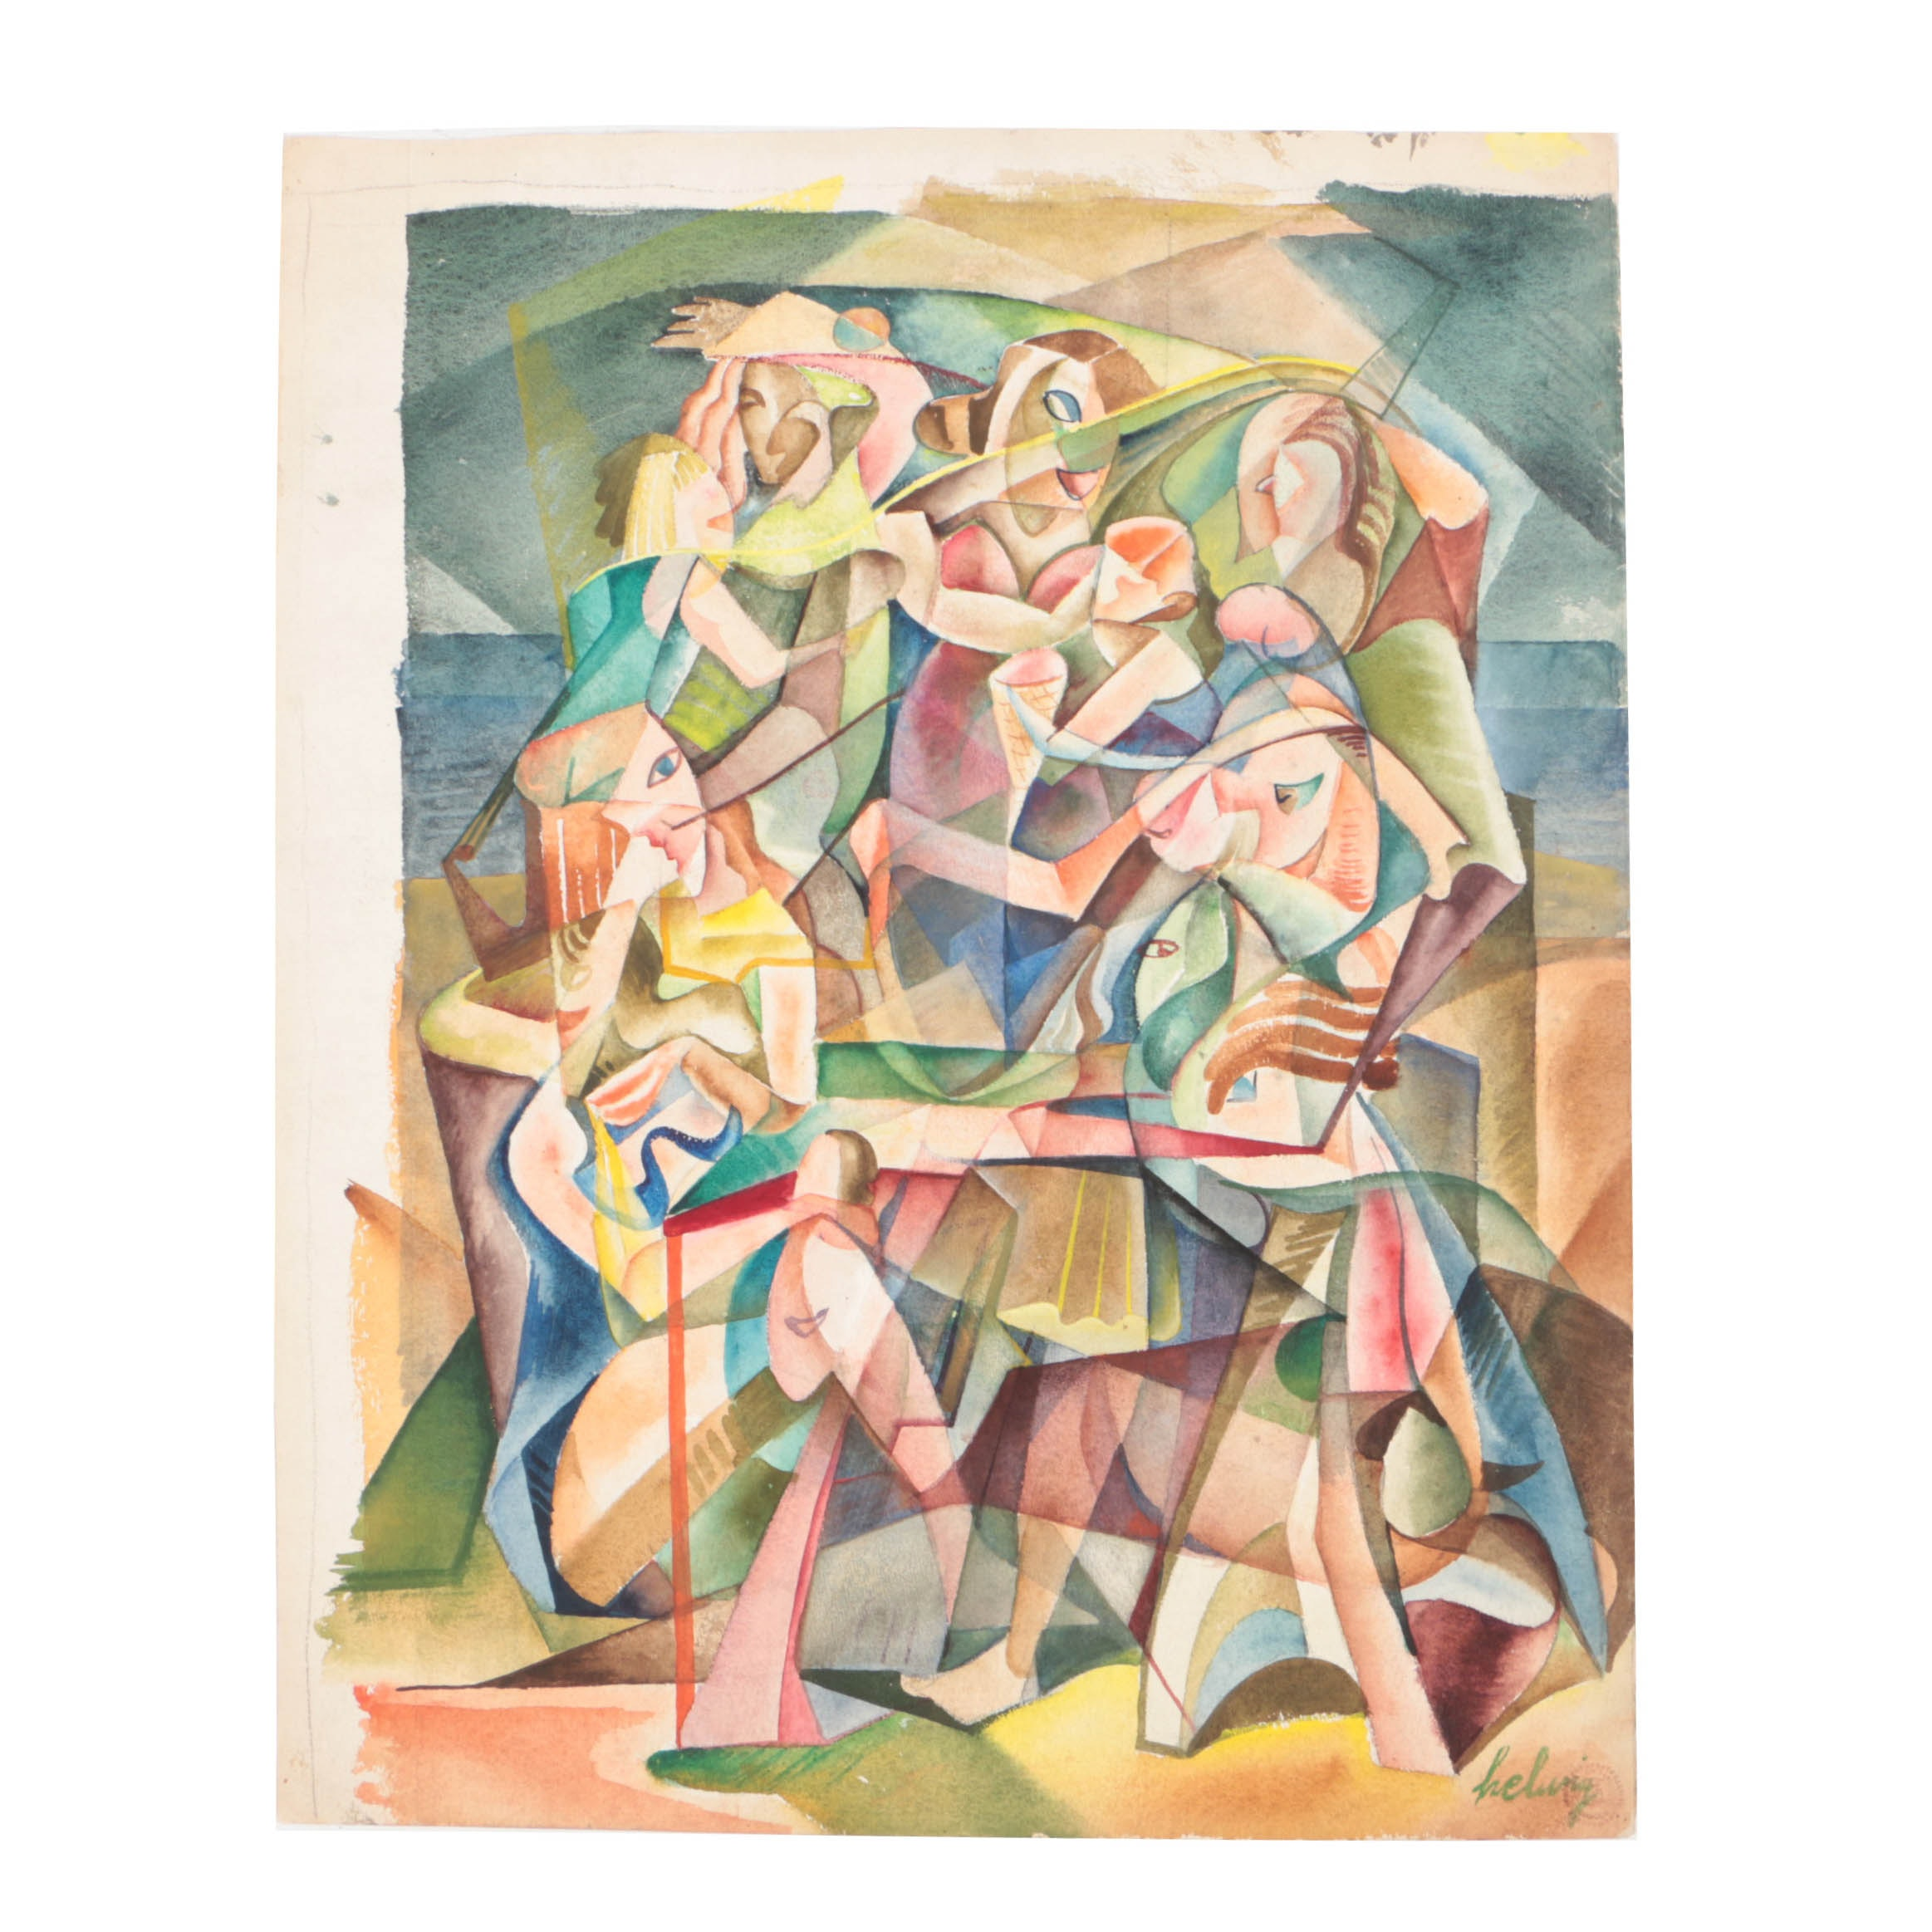 Arthur Helwig Watercolor on Paper of Cubist Figural Composition